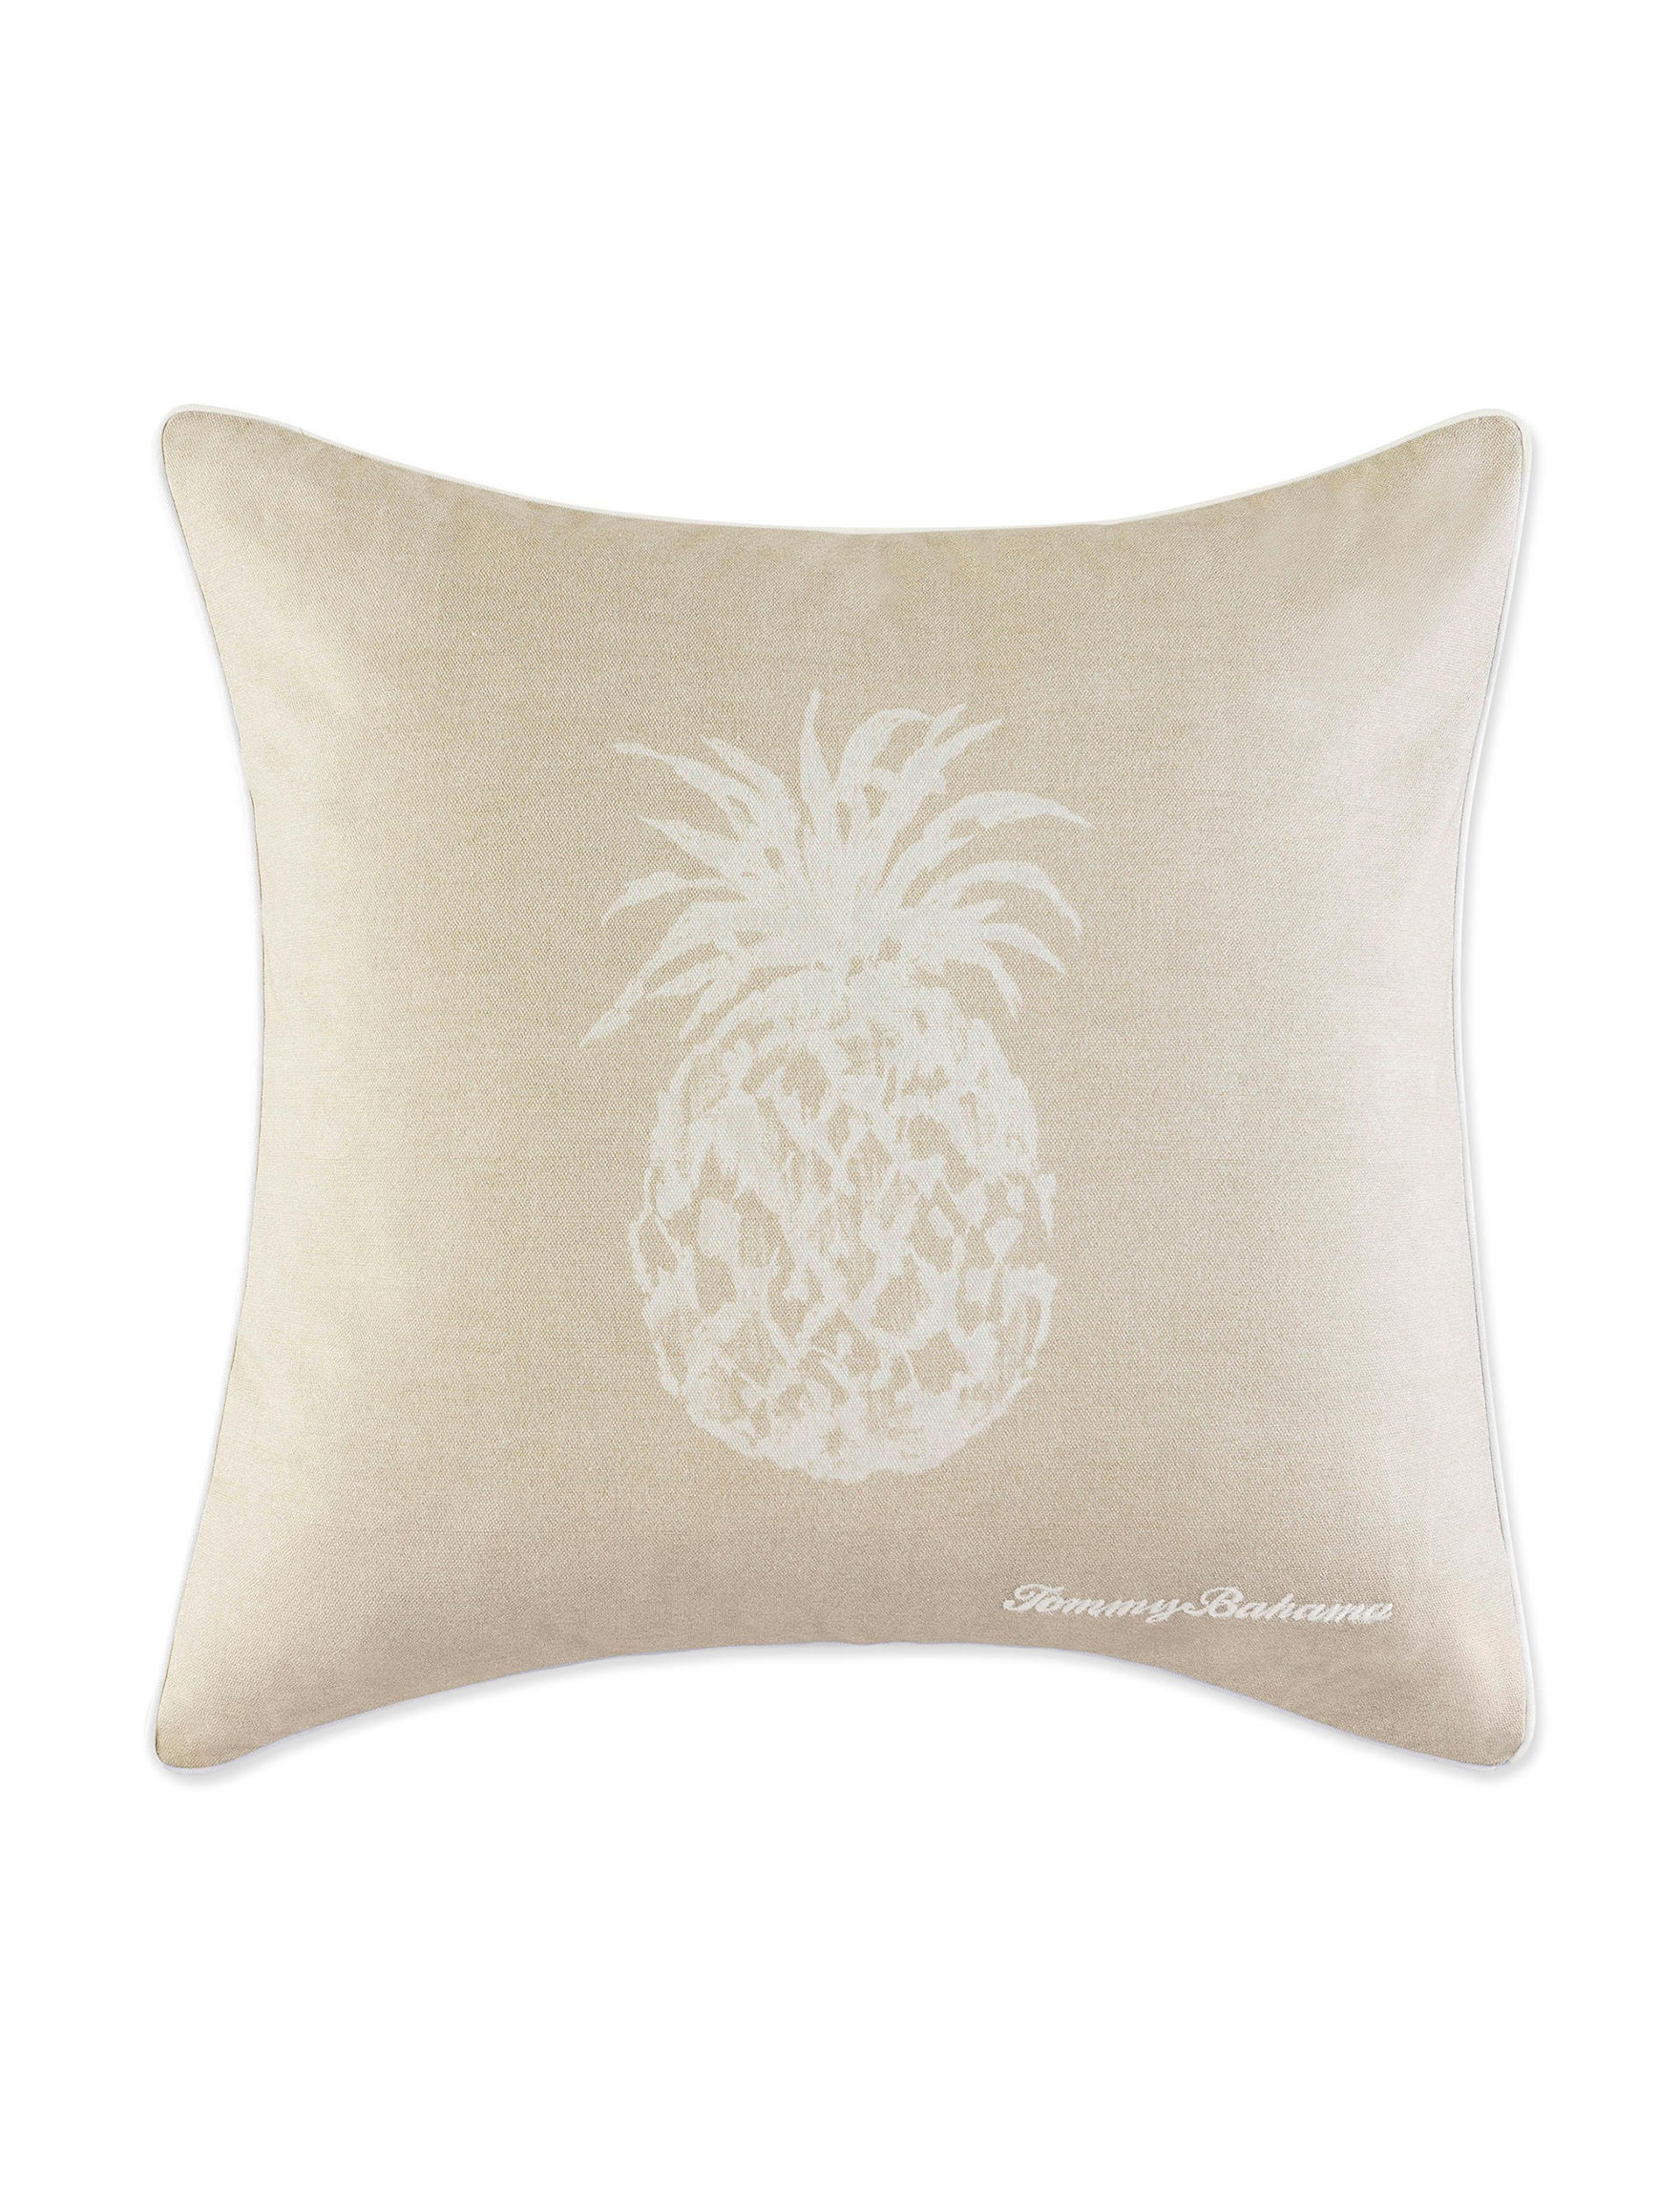 Tommy Bahama Brown Decorative Pillows